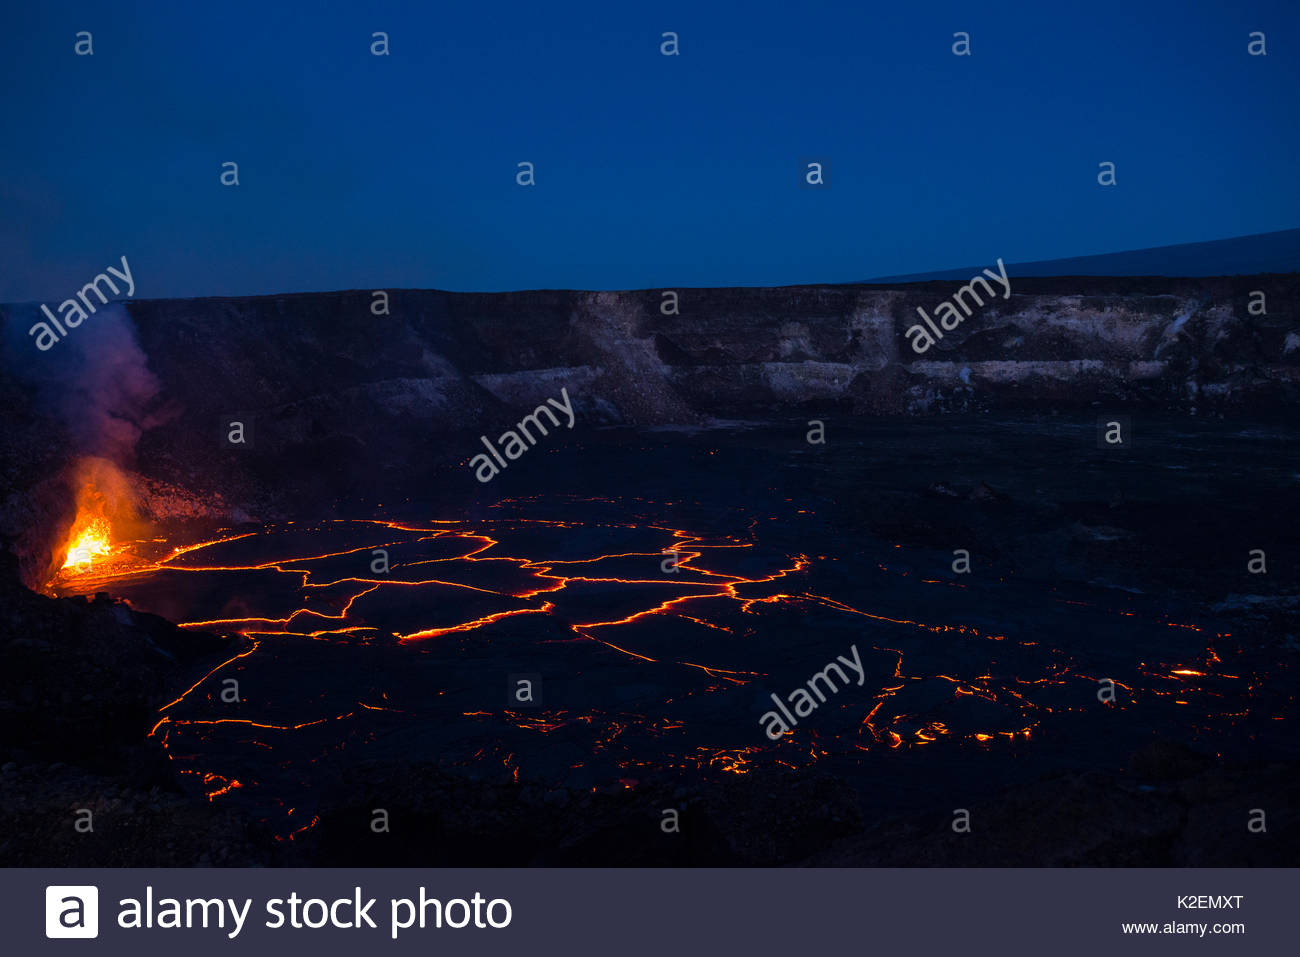 Hot lava fountains at a subduction zone at the edge of a lava lake, covered by plates of partially solidified cooled lava floating on its surface, in a pit within Halemaumau Crater, Kilauea Volcano, Hawaii. May 2015. - Stock Image